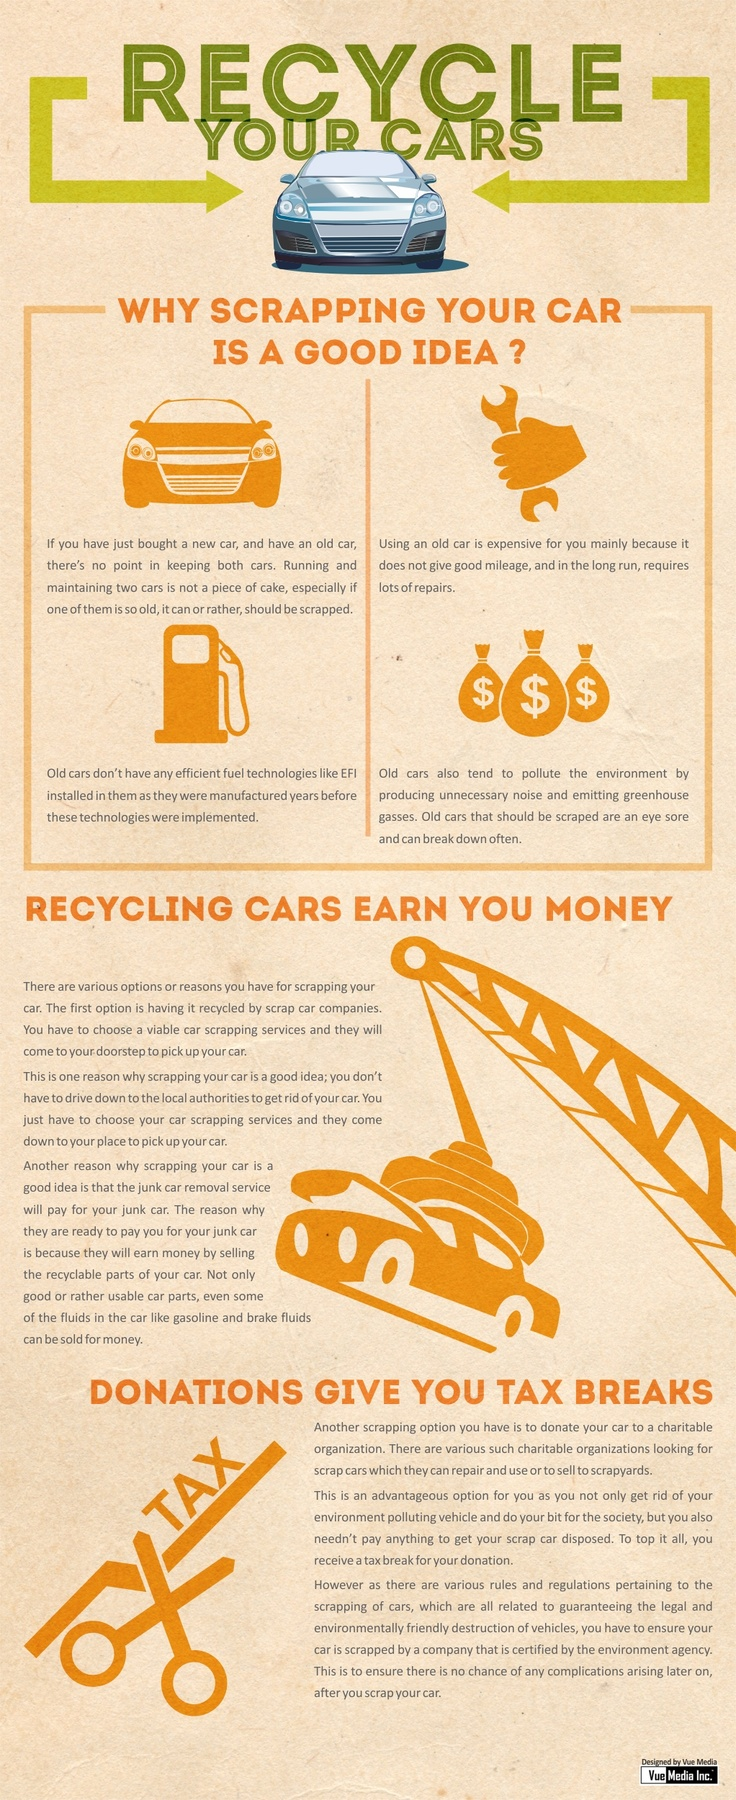 36 best Recycle Cars images on Pinterest | Scrap car, Cars and ...